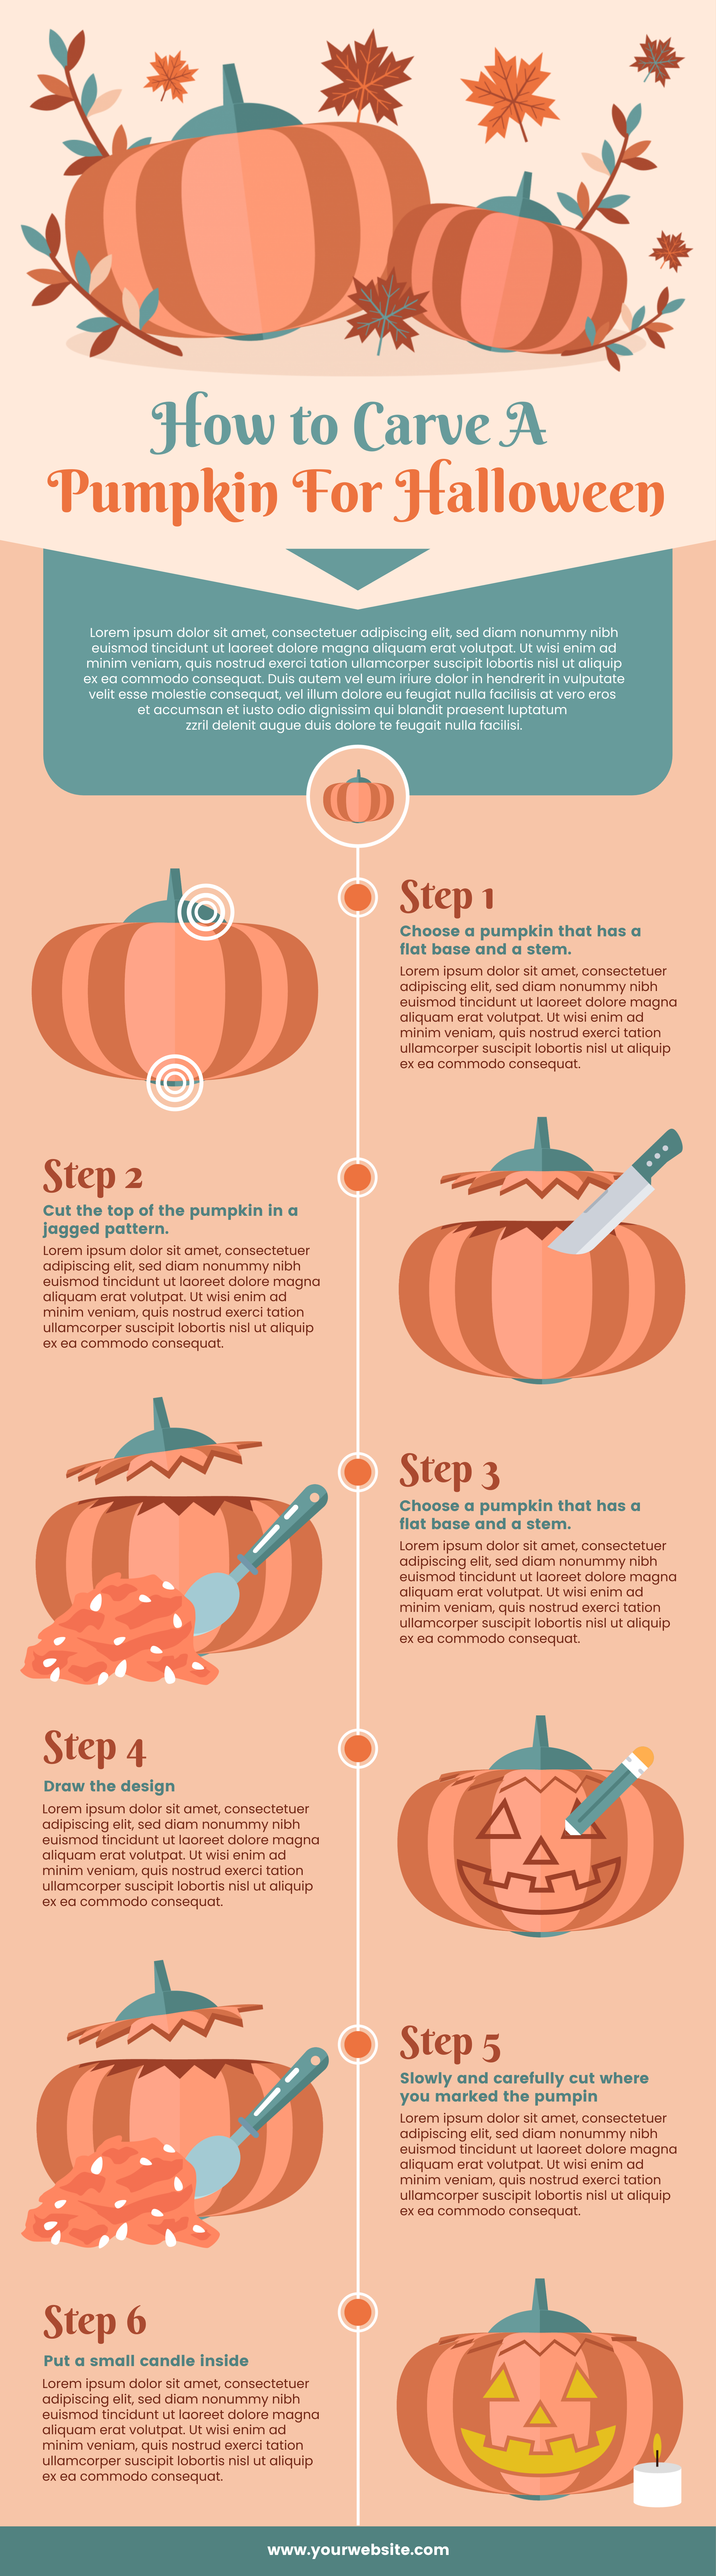 A process infographic on how to carve Halloween pumpkins